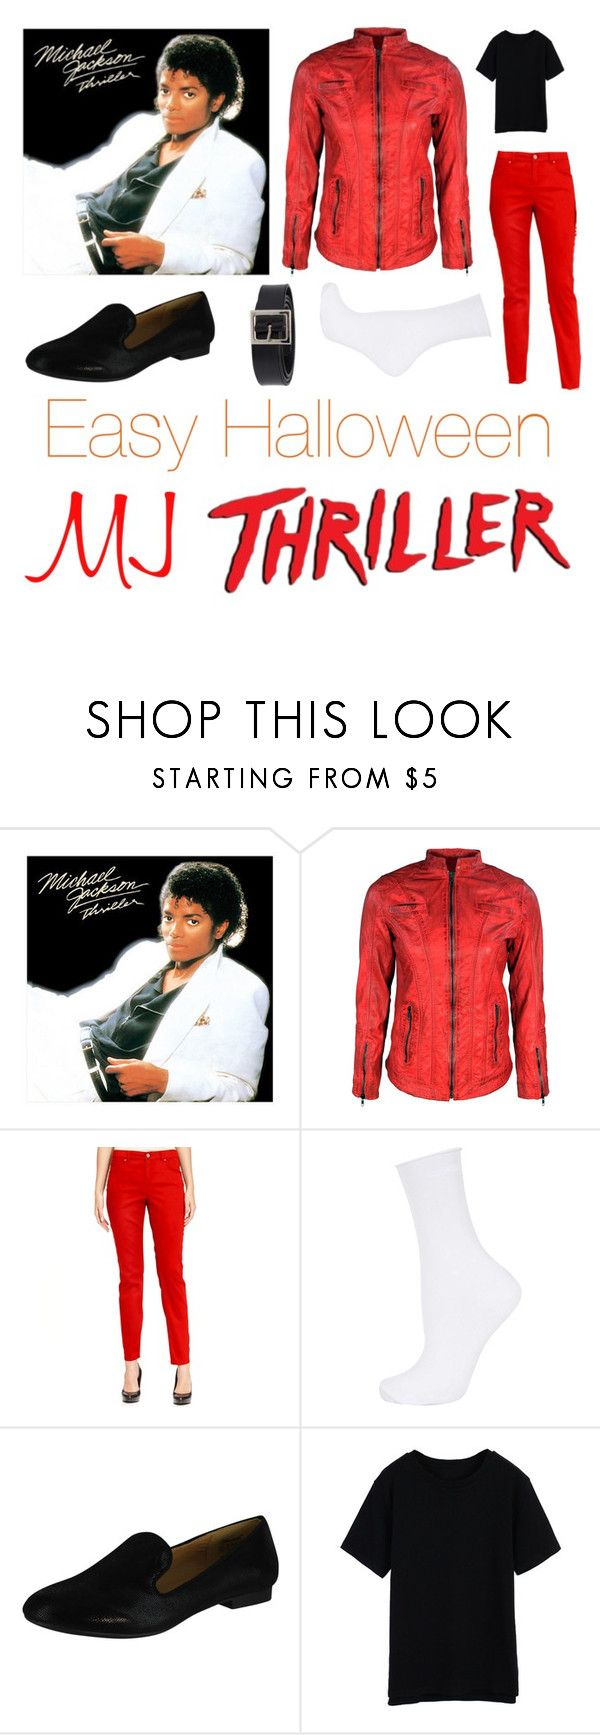 """""""Easy Halloween Costume: Michael Jackson Thriller"""" by thinkinsidethebox ❤ liked on Polyvore featuring VIPARO, Style & Co., Topshop, Wanted and Dolce&Gabbana"""